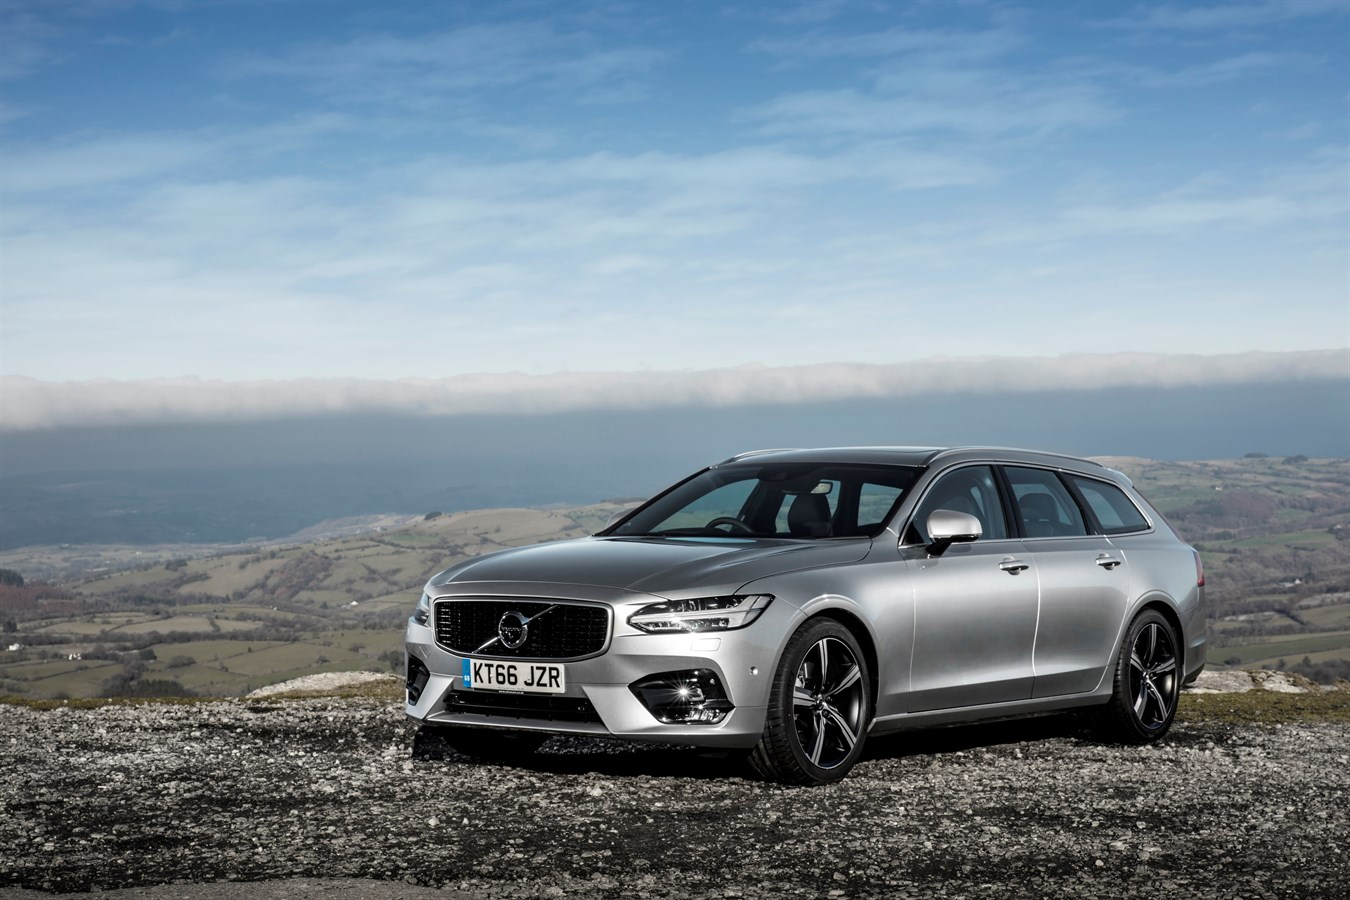 Fleet World names Volvo Cars as 'One to Watch' in 2017 - Volvo Car UK Media Newsroom